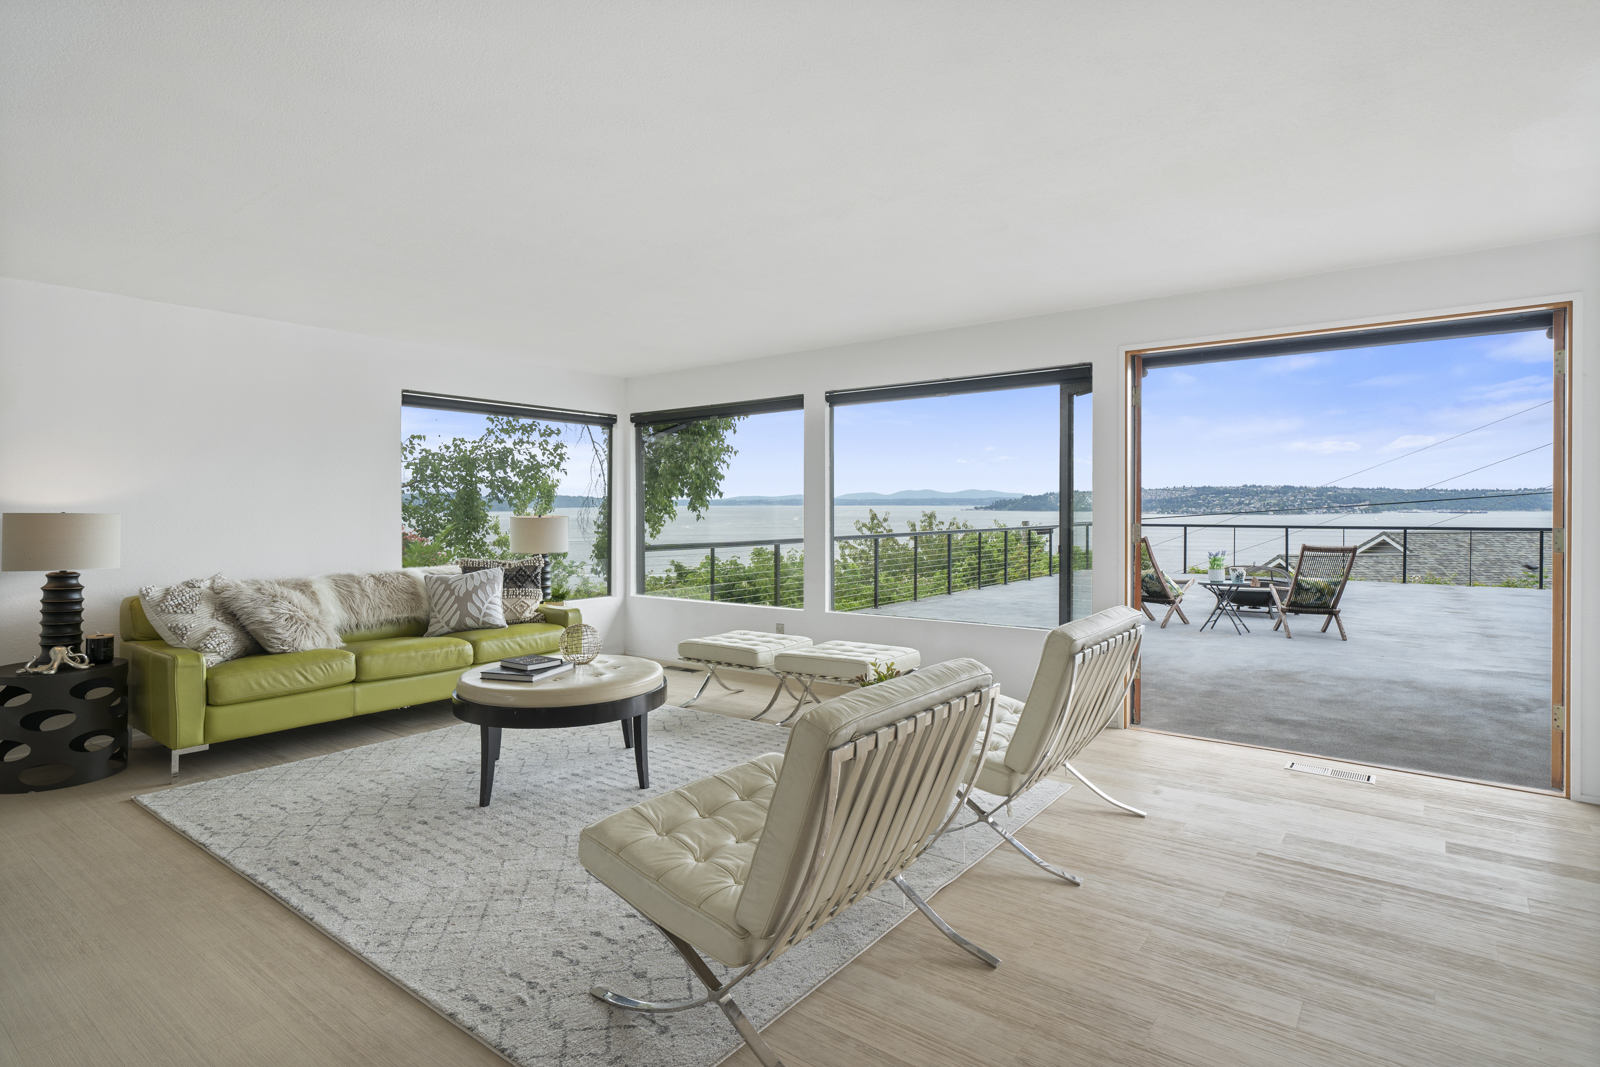 Unobstructed, Panoramic Views in this Mid-Century Modern Home | 4801 N Mullen St, Tacoma